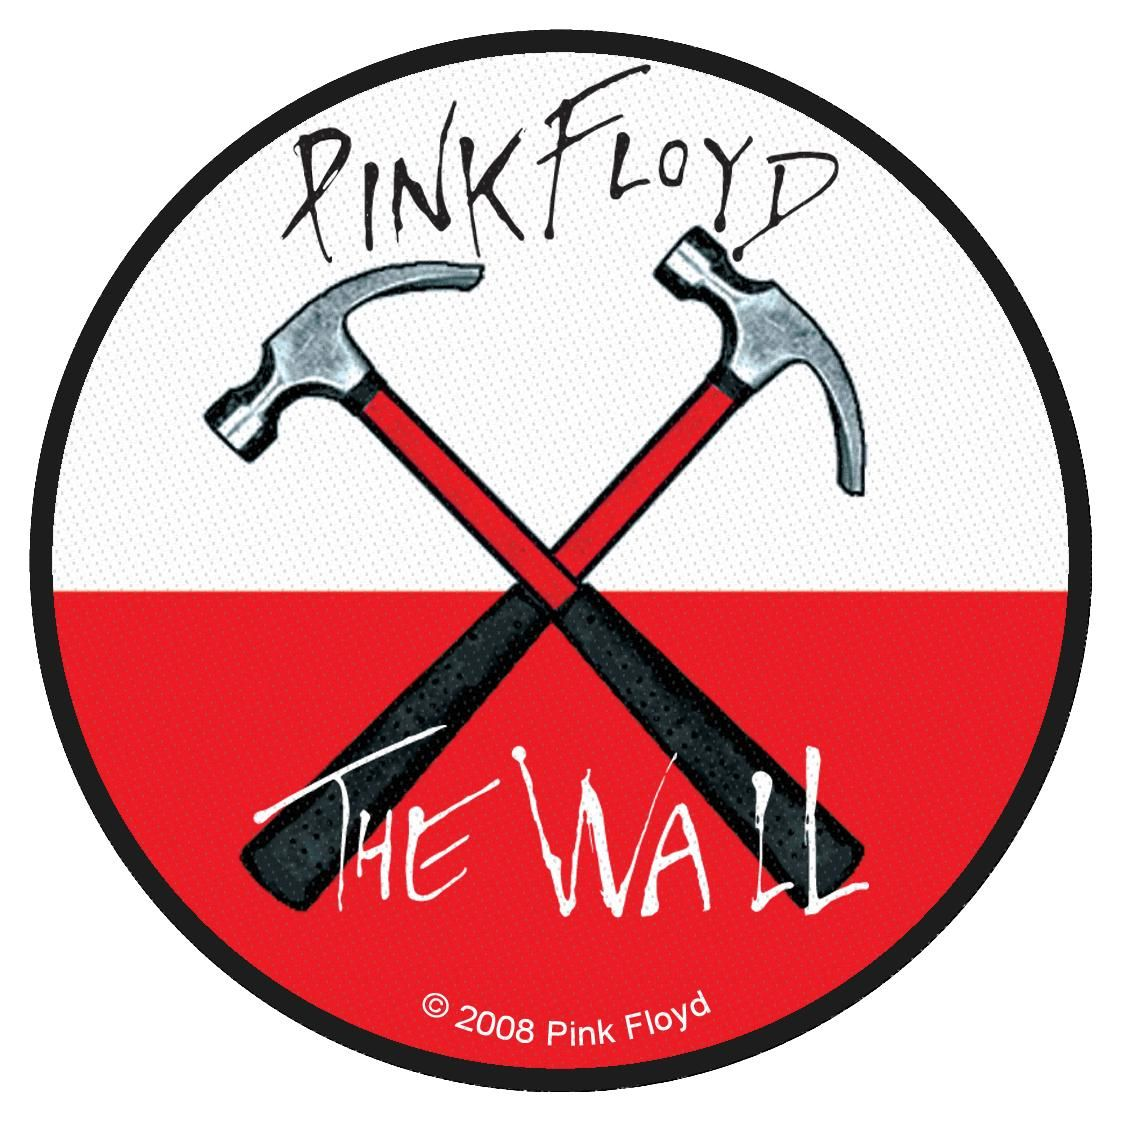 Pink Floyd The Wall Logo By Christopher Roob Вышивка шерстью